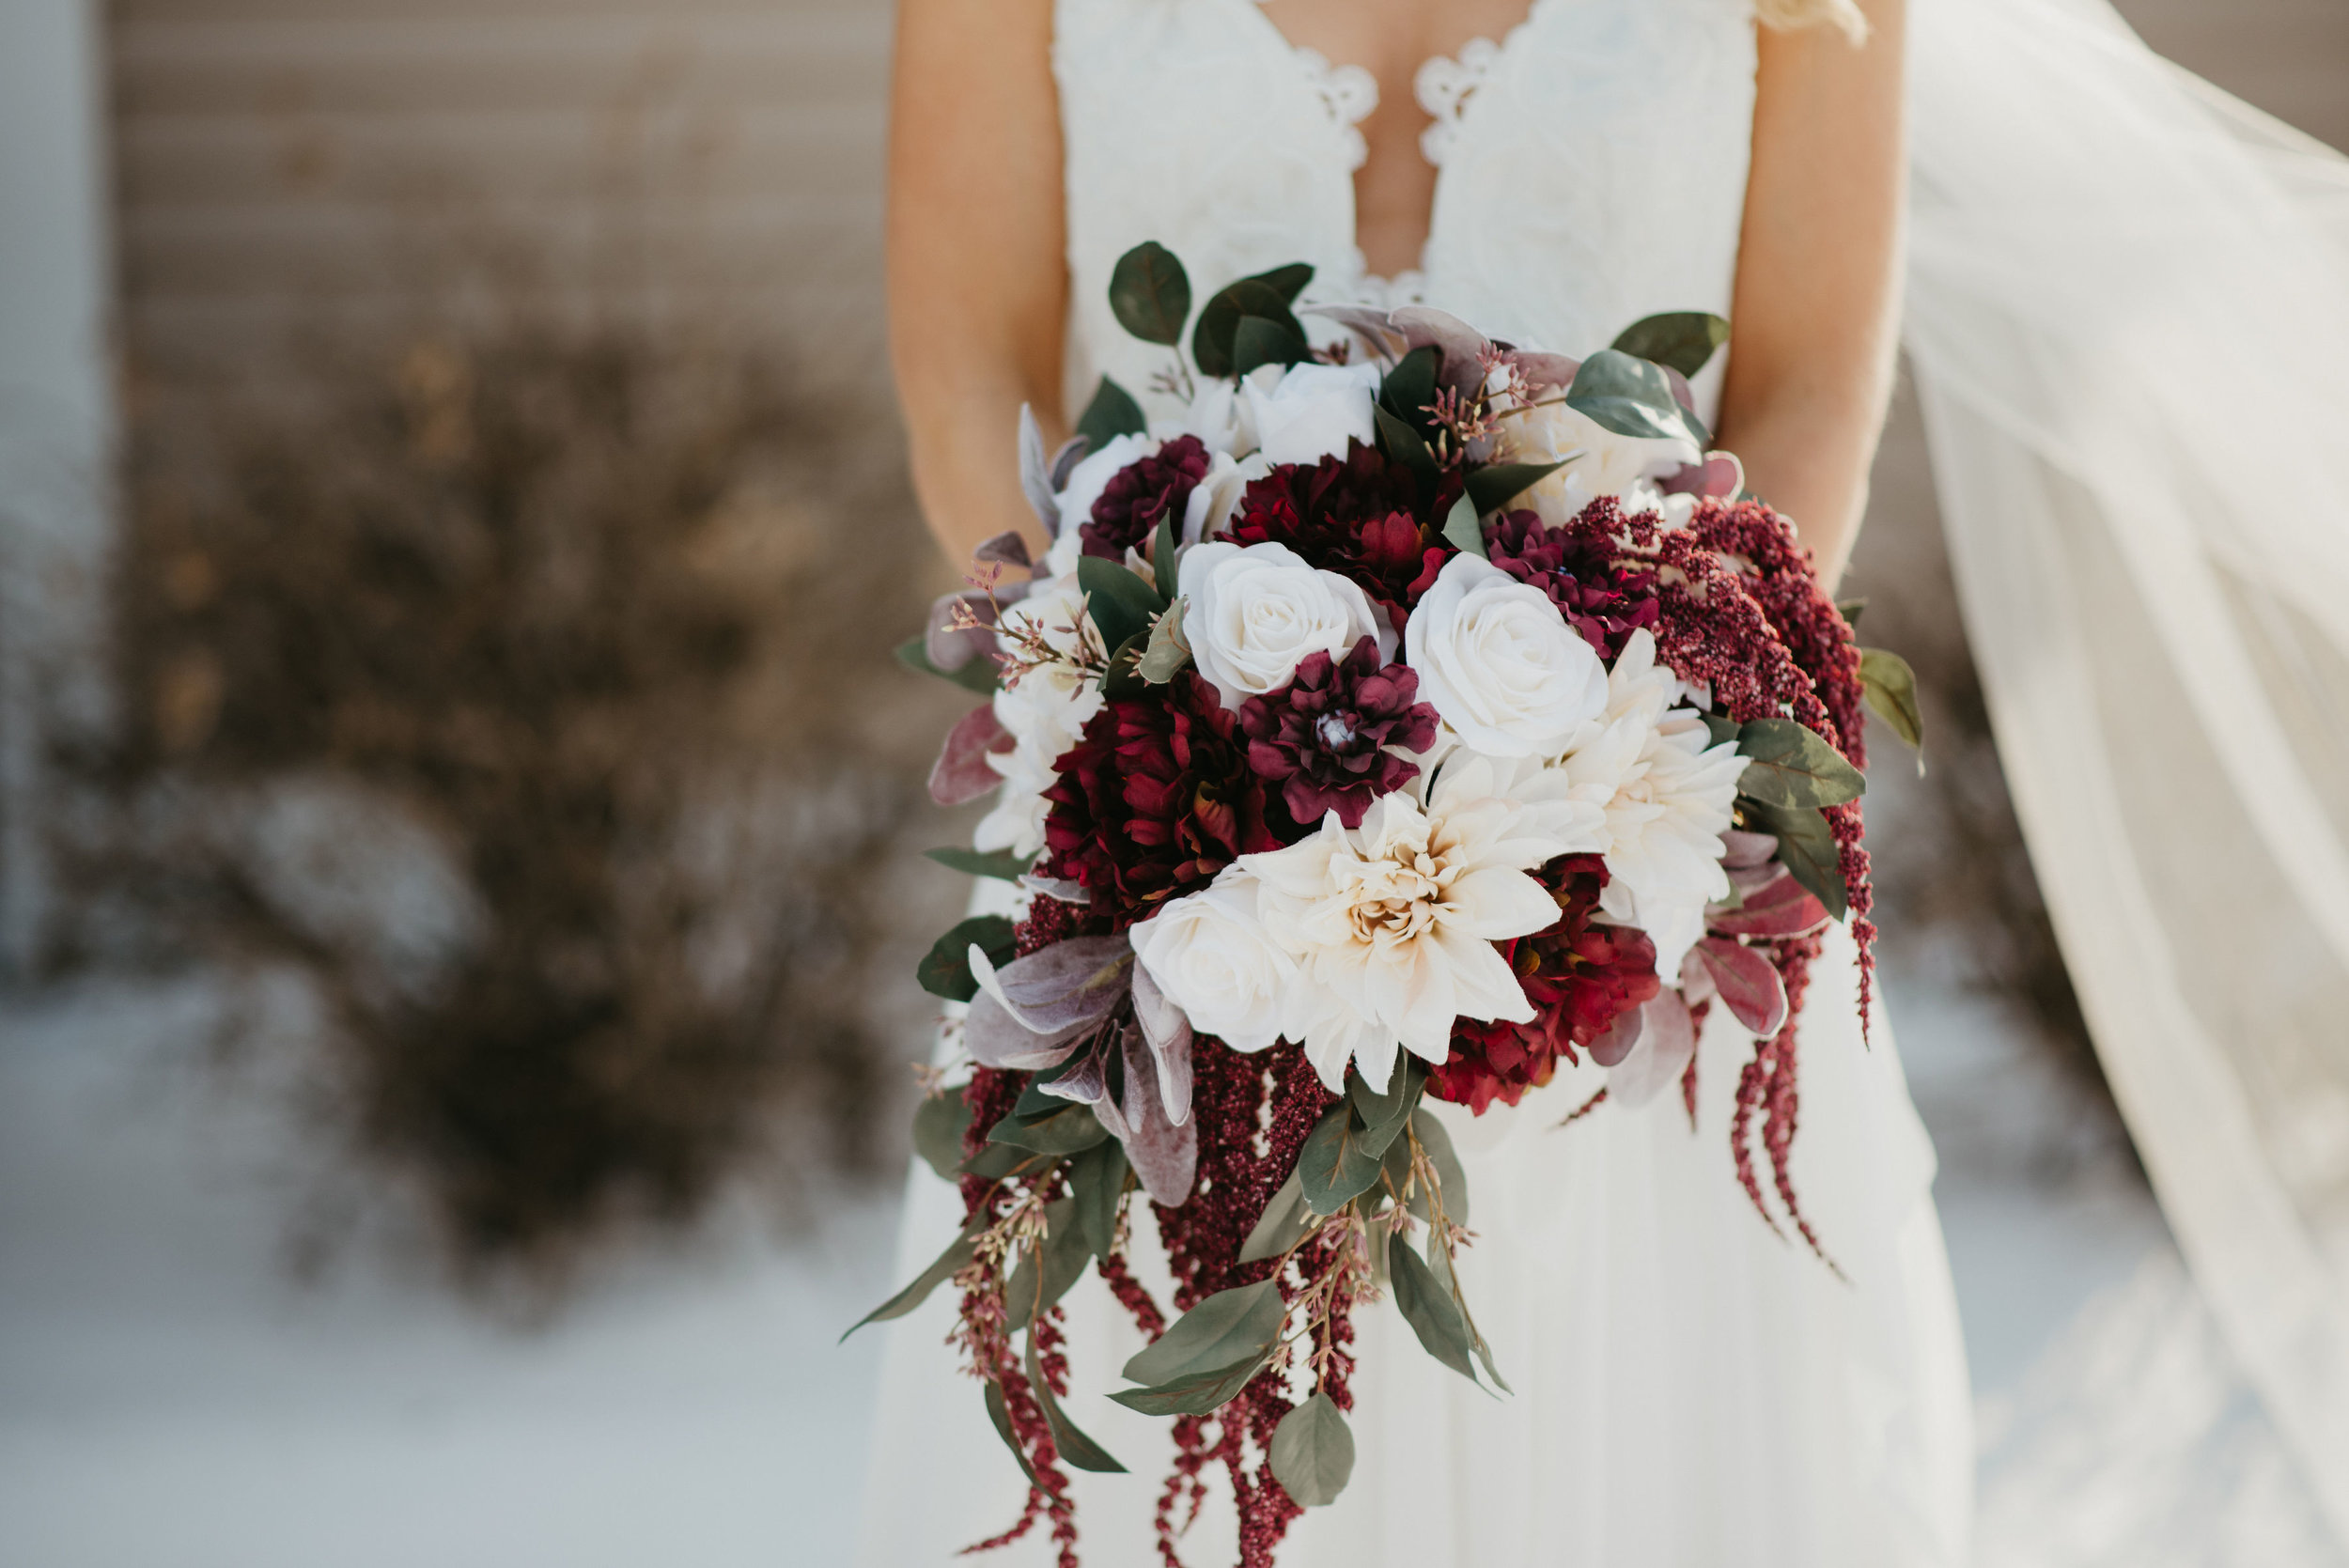 Burgundy-modified-cascade-silk-wedding-bouquet-roses-eucalyptus-branches.jpg